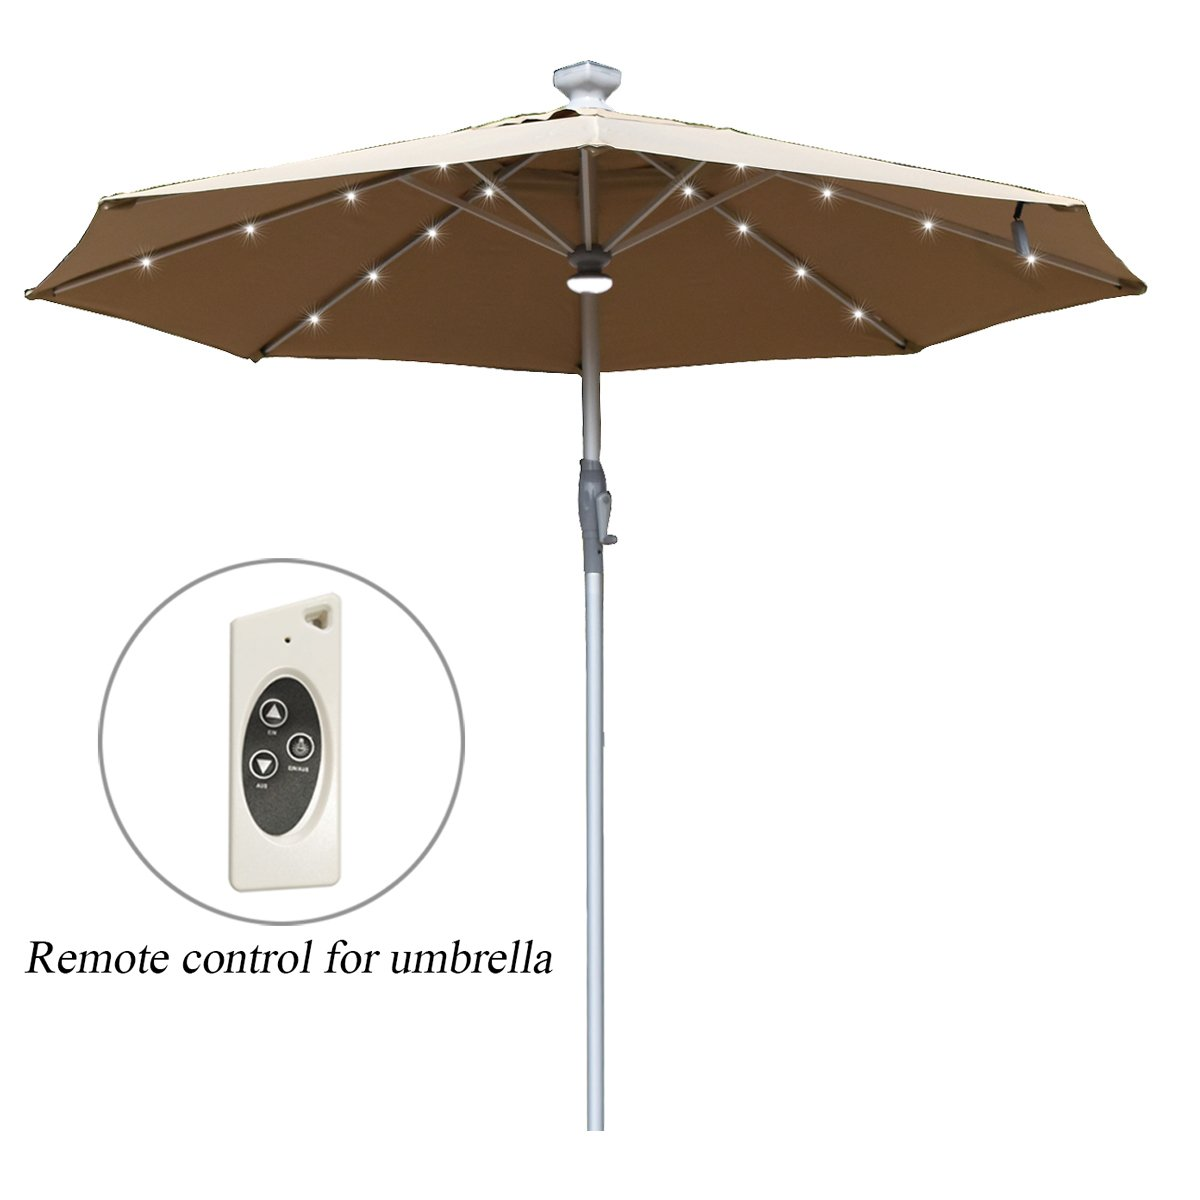 Mefo garden Electric Automatic Patio Umbrella Outdoor Umbrella with Crank Handle LED Lights 250gsm 9.8Ft Aluminum, Tan